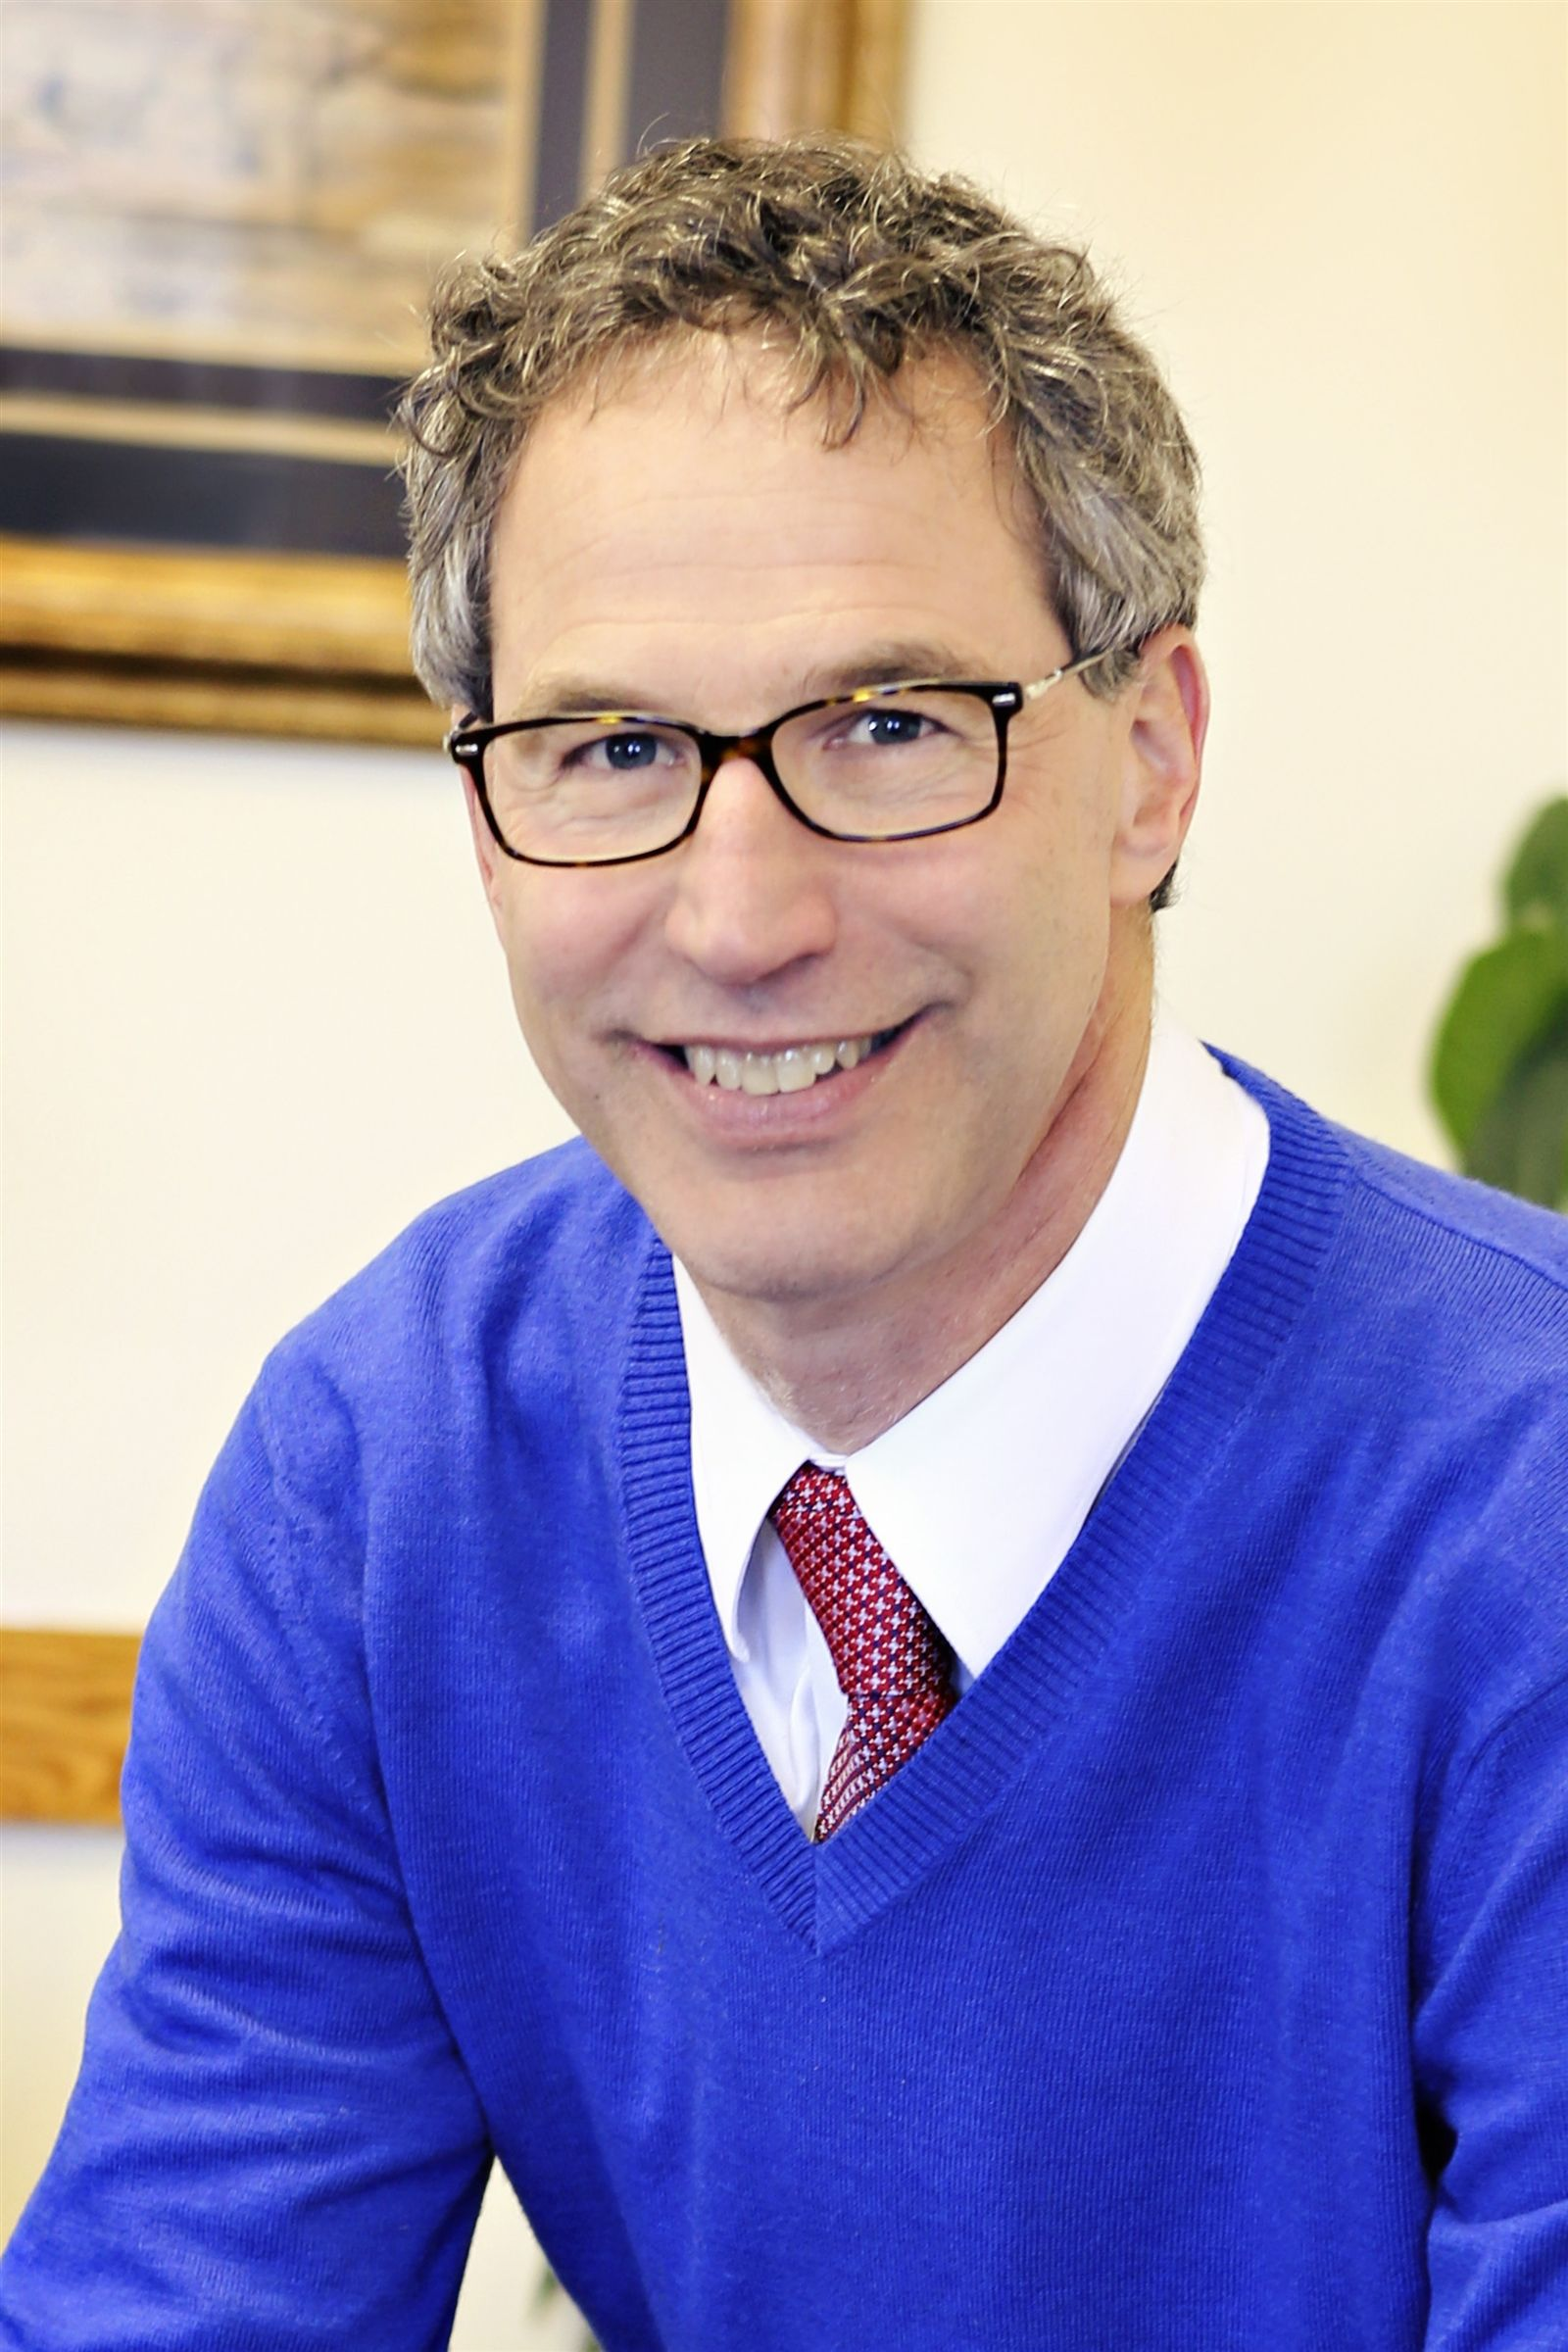 Dave Michelman, Head of School